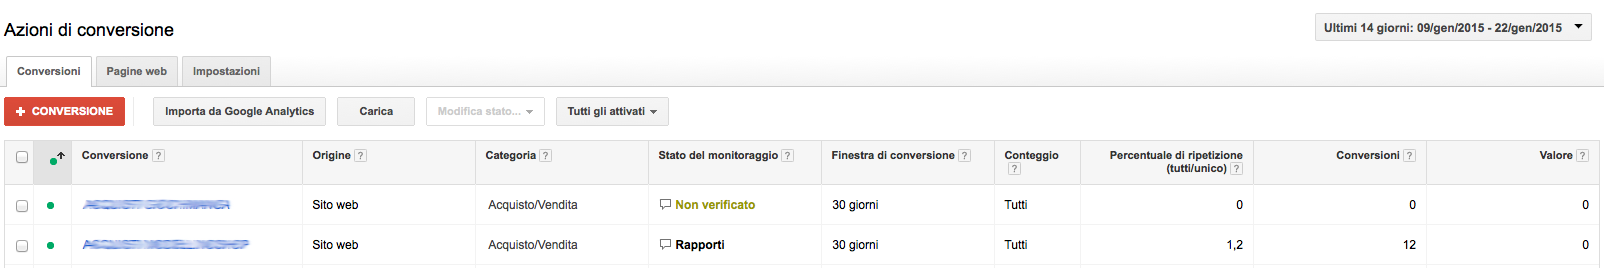 conversioni-adwords